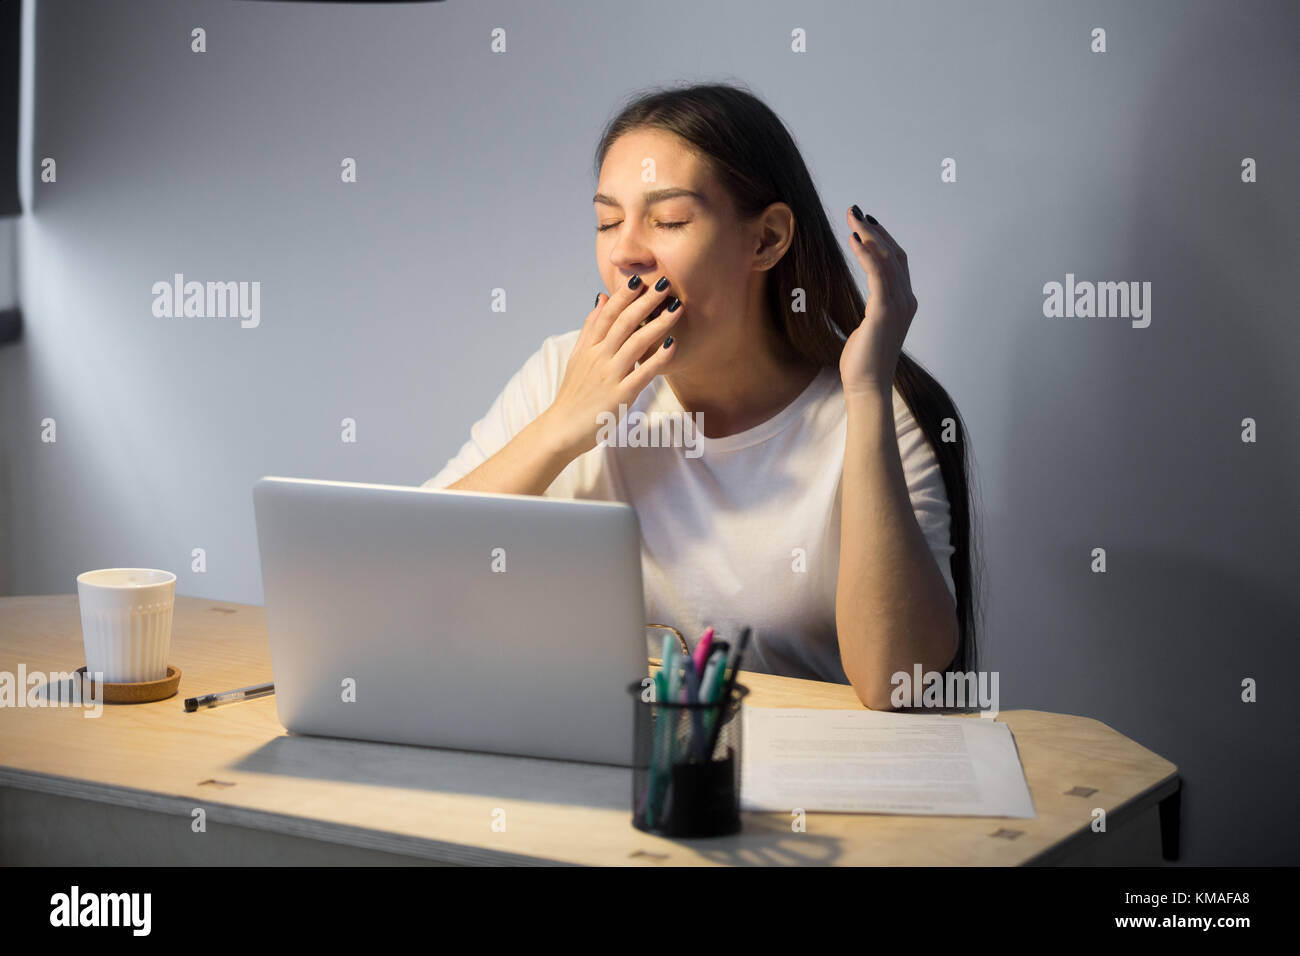 Exhausted millennial businesswoman in casual wear yawning at workplace in home office. Fatigued young female employer - Stock Image